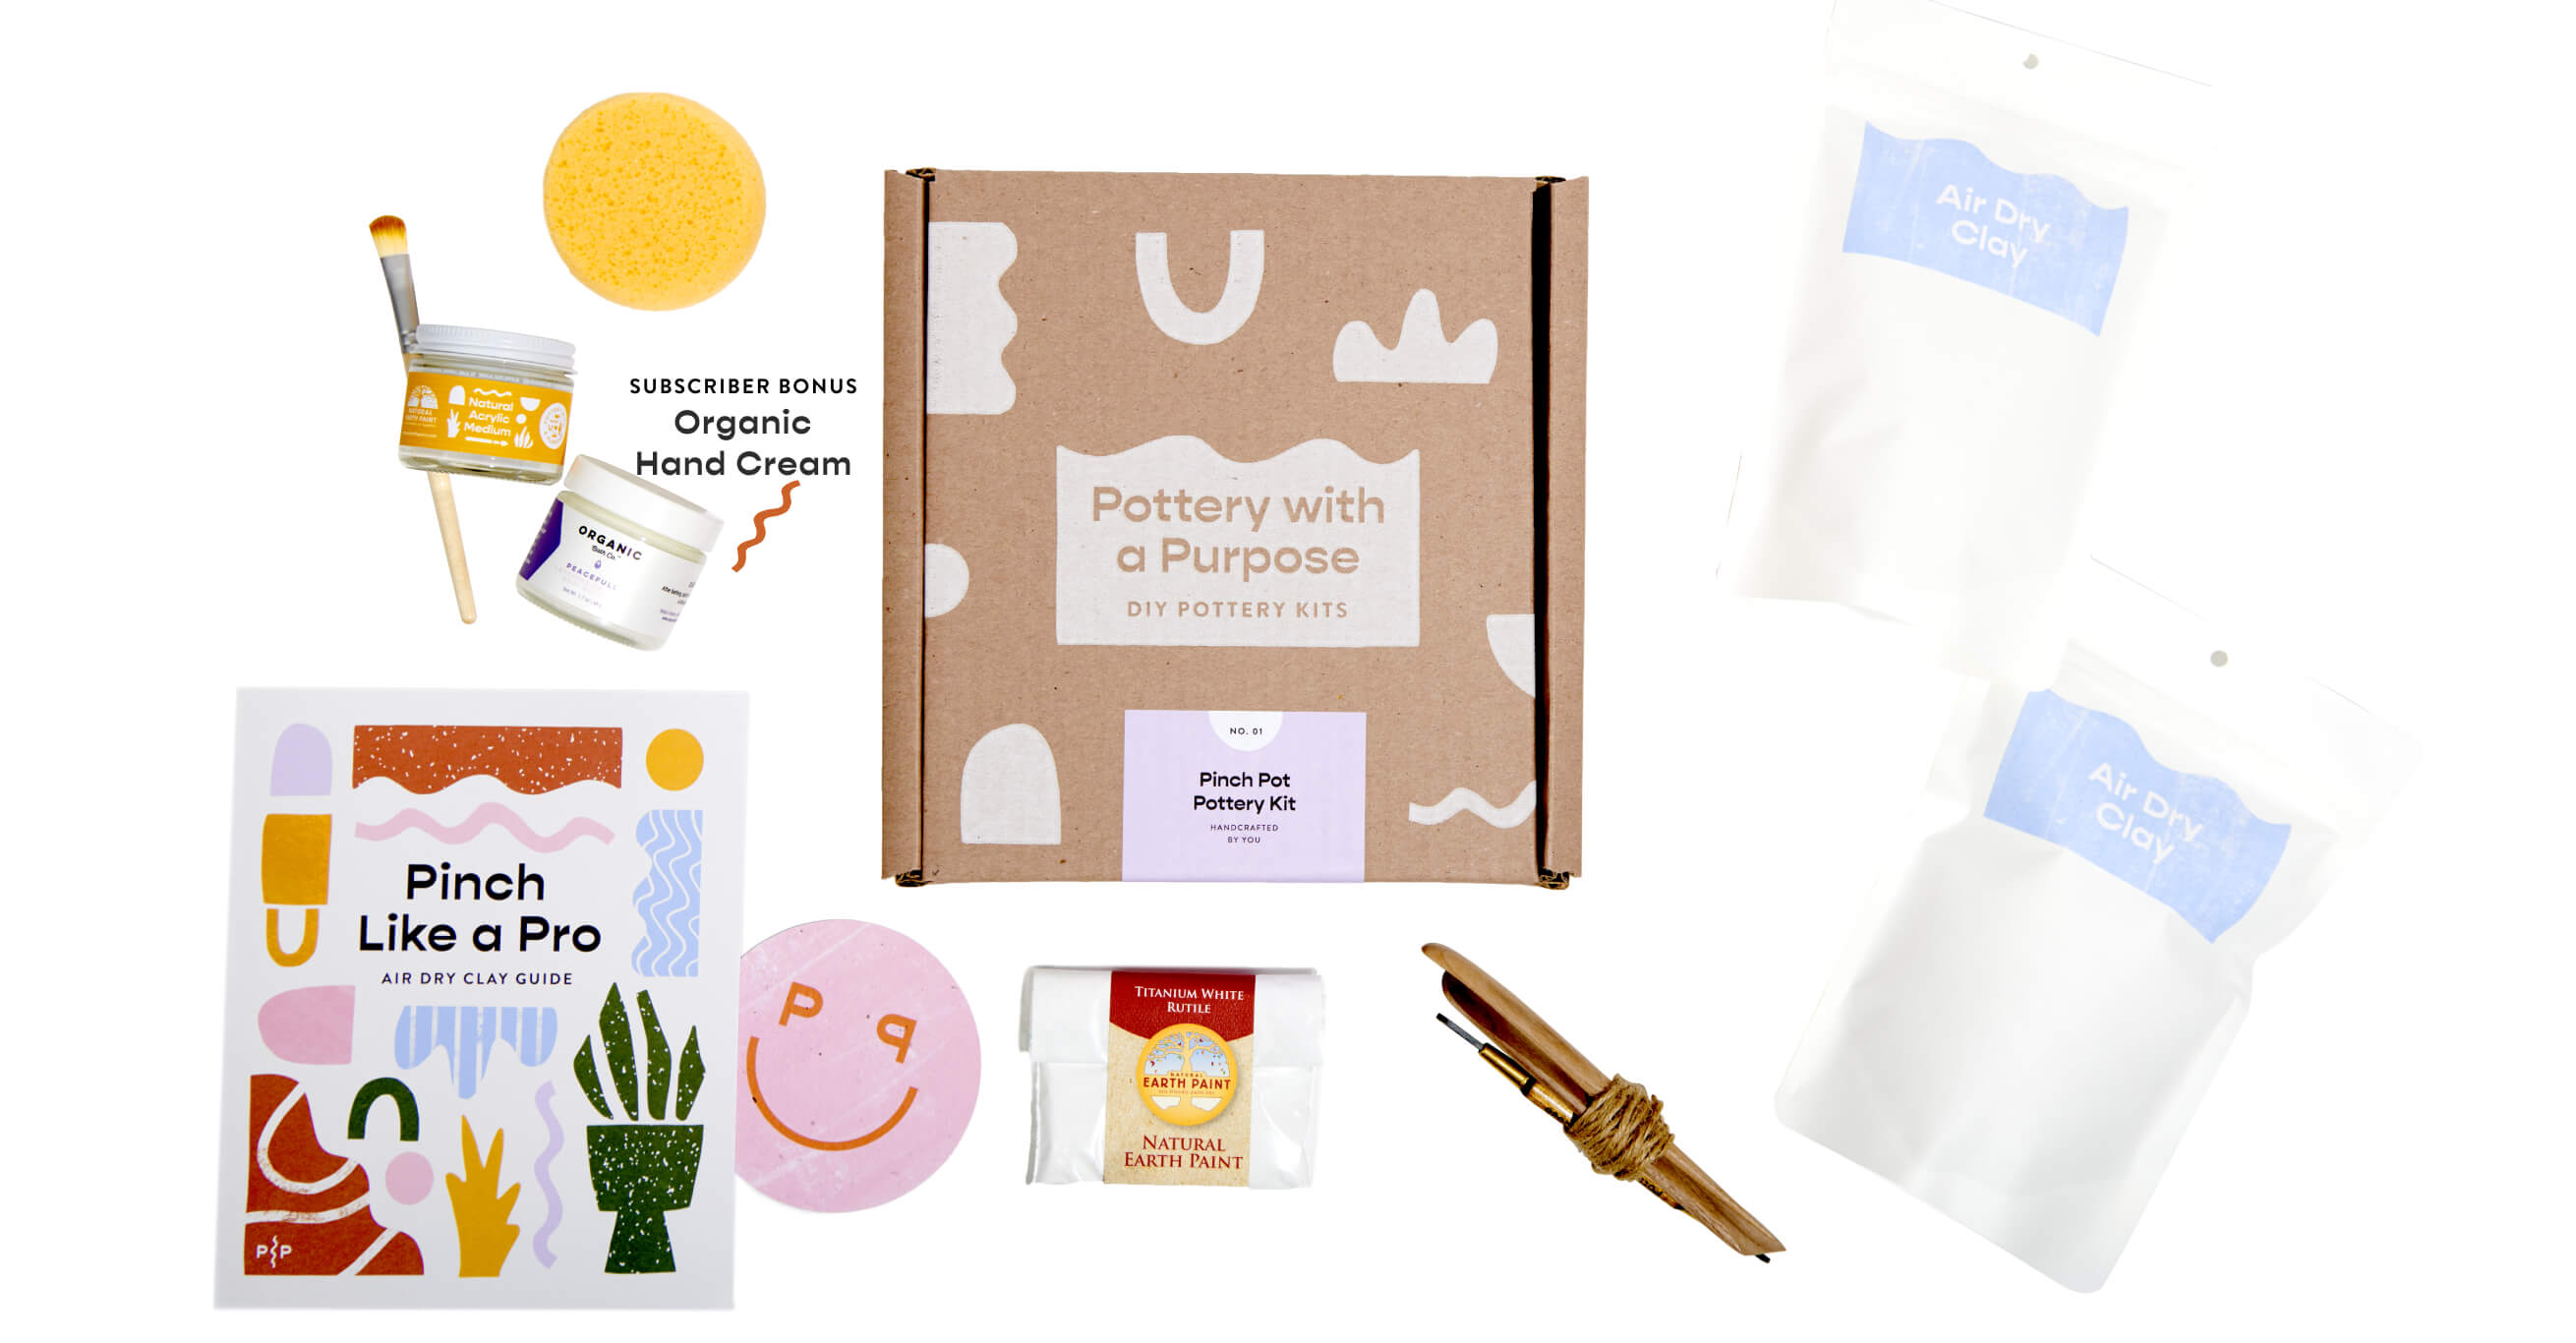 Included with your make at home air dry clay kit is sculting tools, a sponge, a koster, your ping guide, acrylic paint, a vegan paintbrush, powder paint and subscription members also get a bonus hand cream.